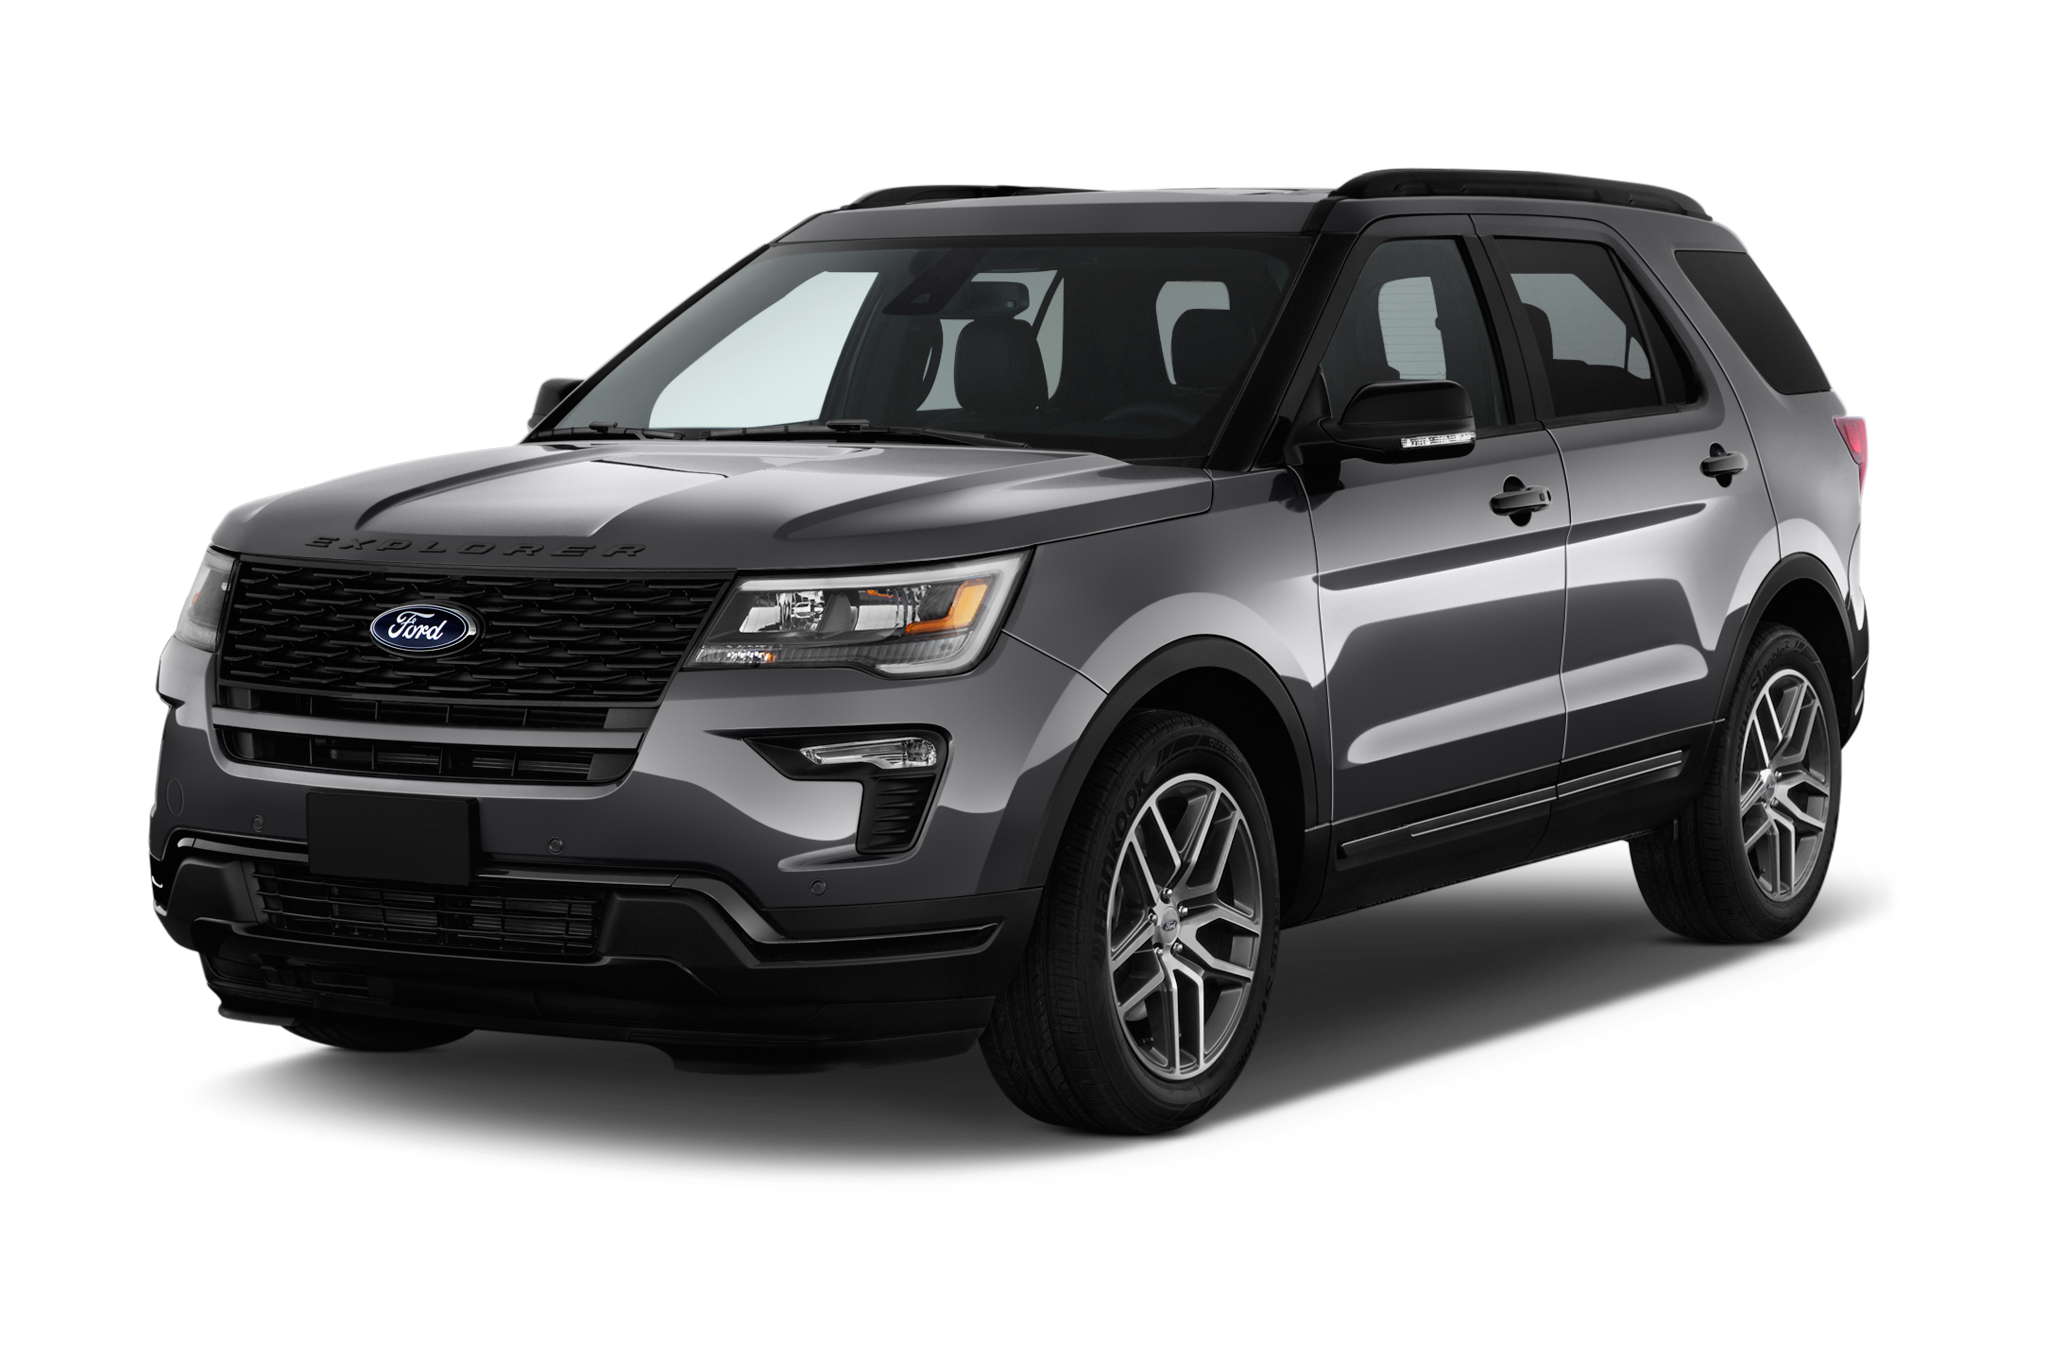 2018 ford explorer specs and features msn autos. Black Bedroom Furniture Sets. Home Design Ideas